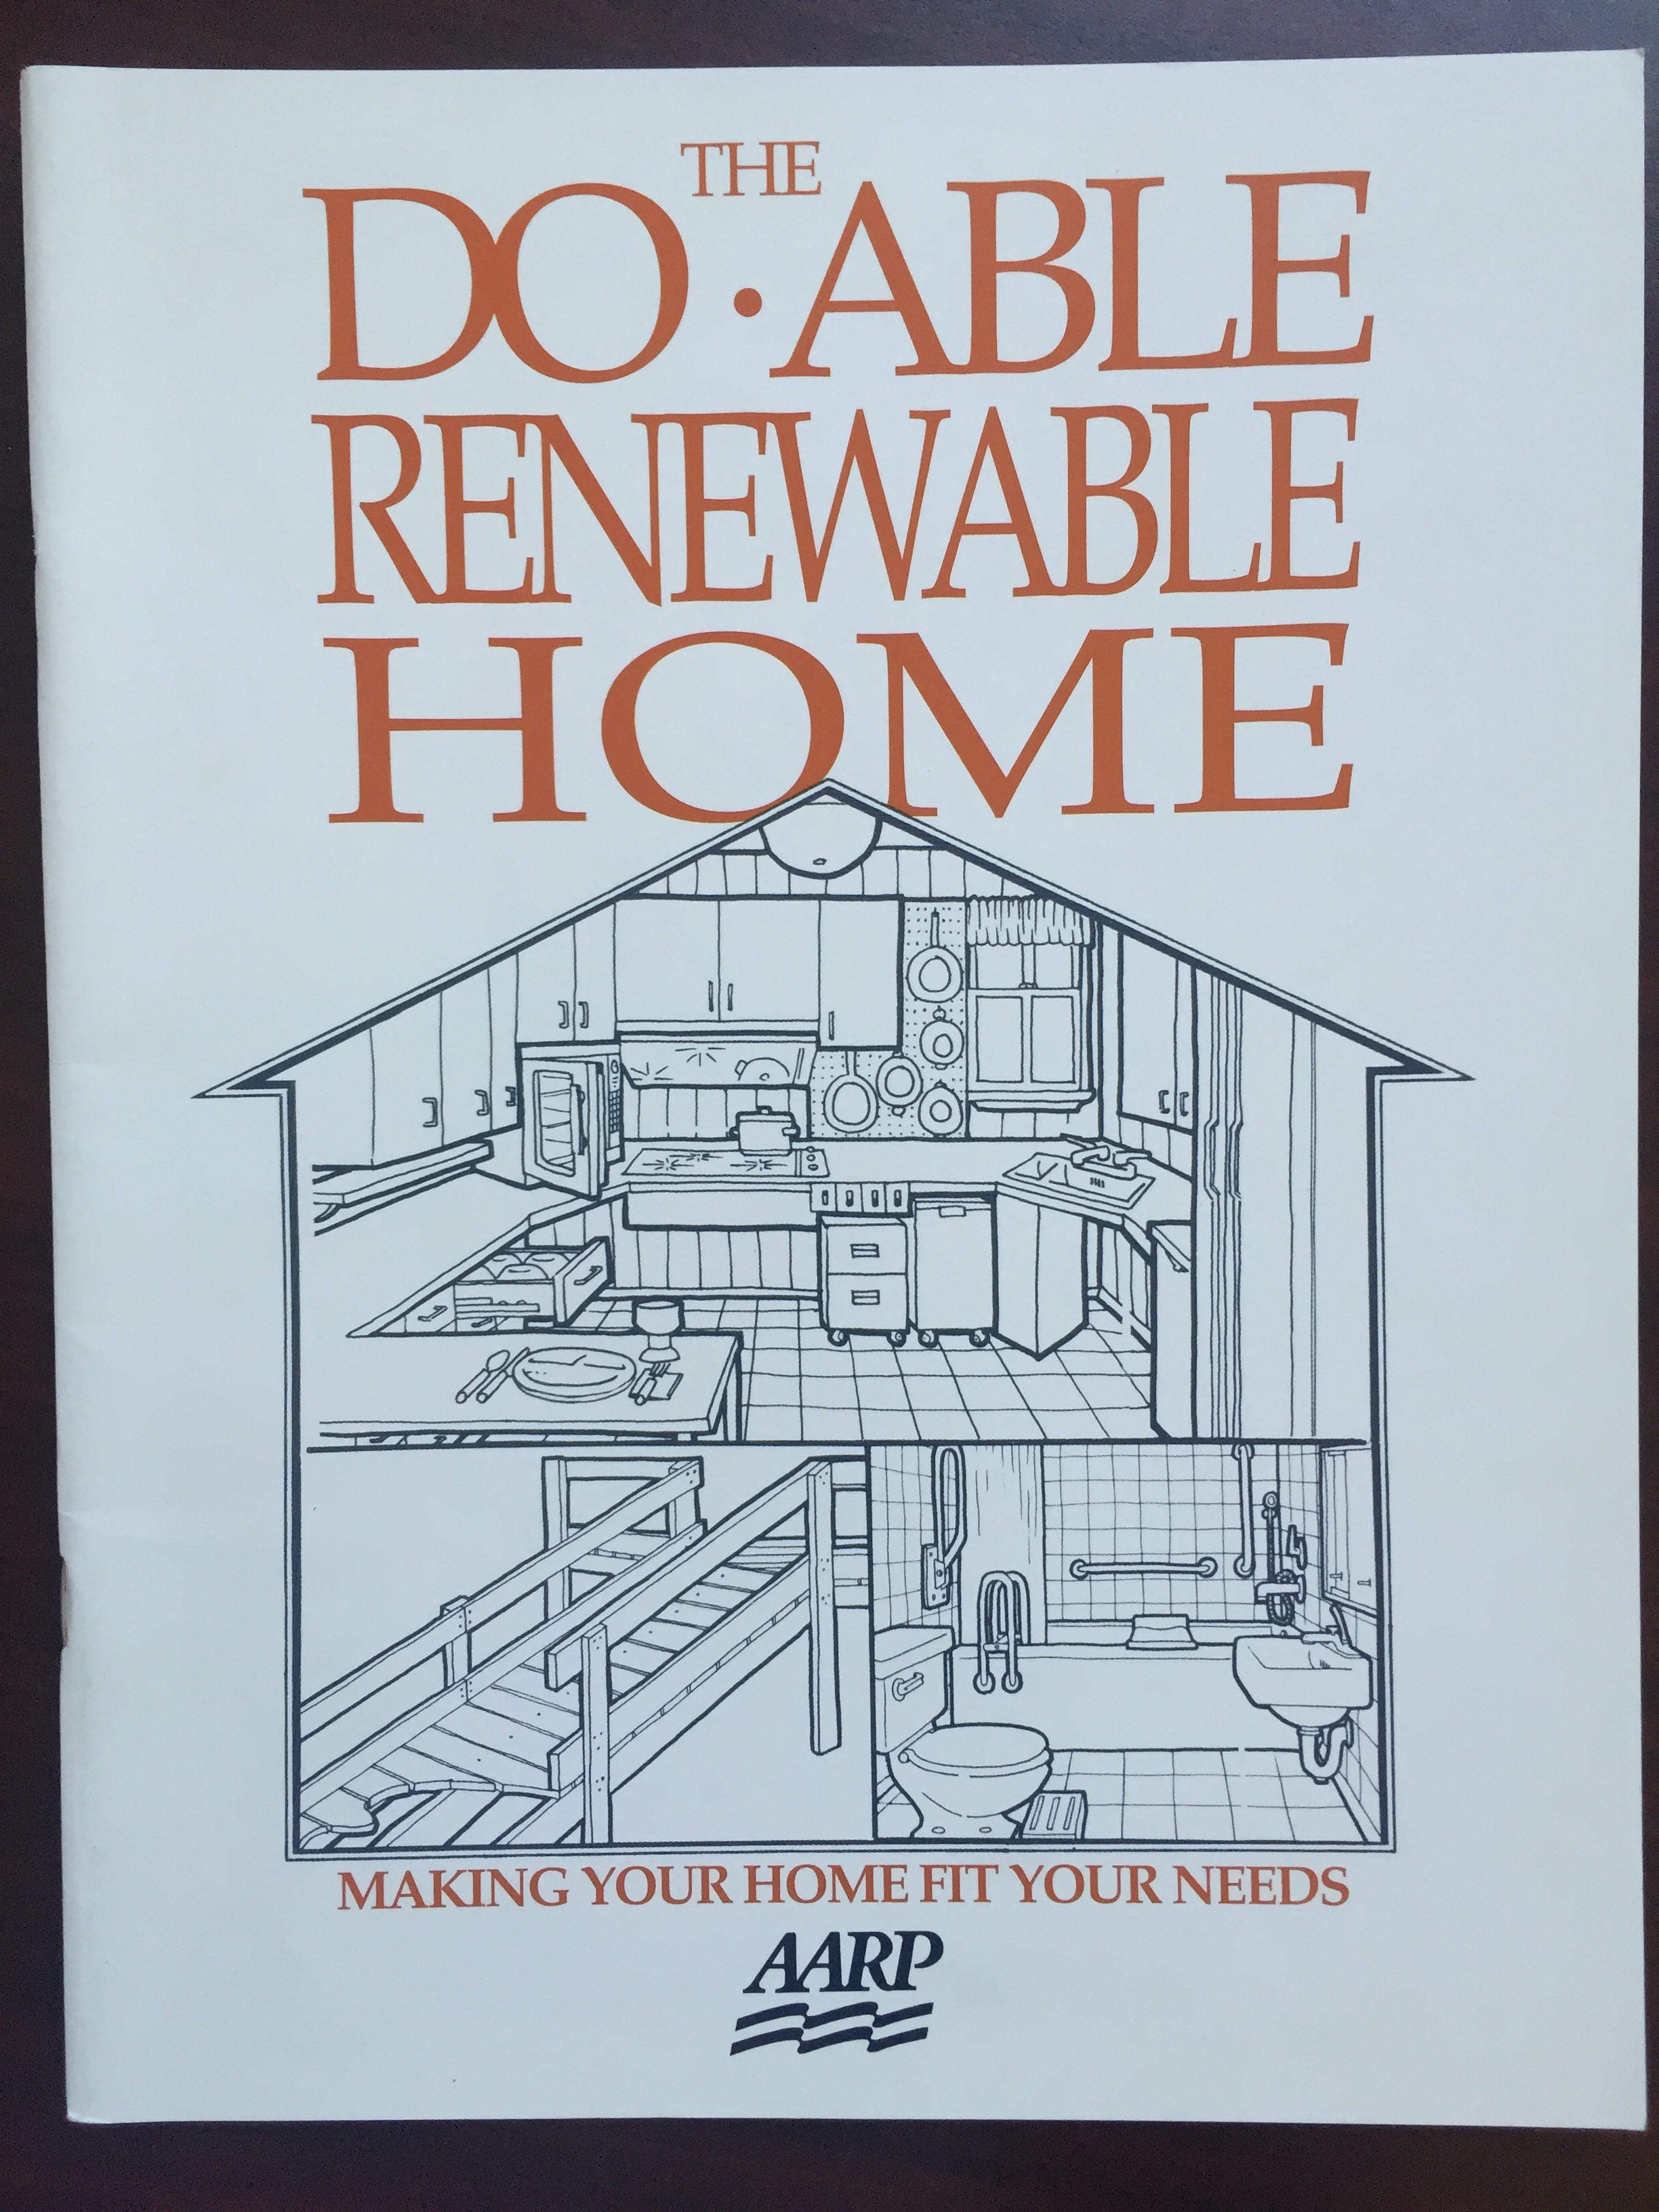 the future history of housing aarp post aging in place ideas